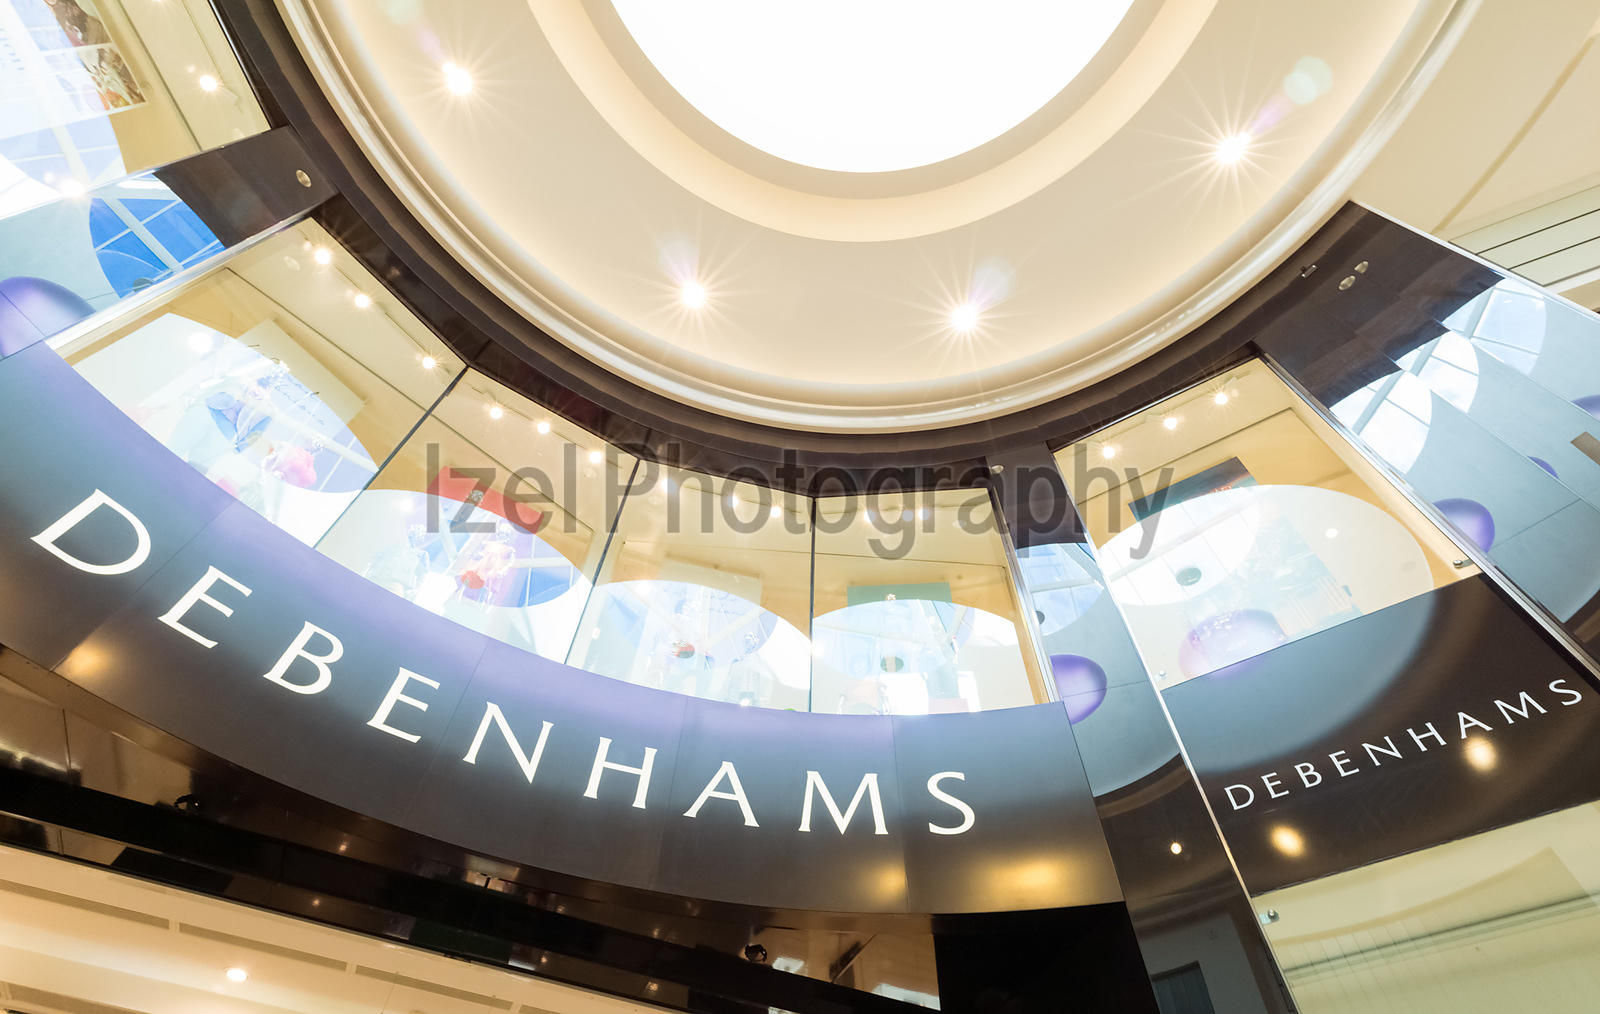 Debenhams Department Store at Eldon Square